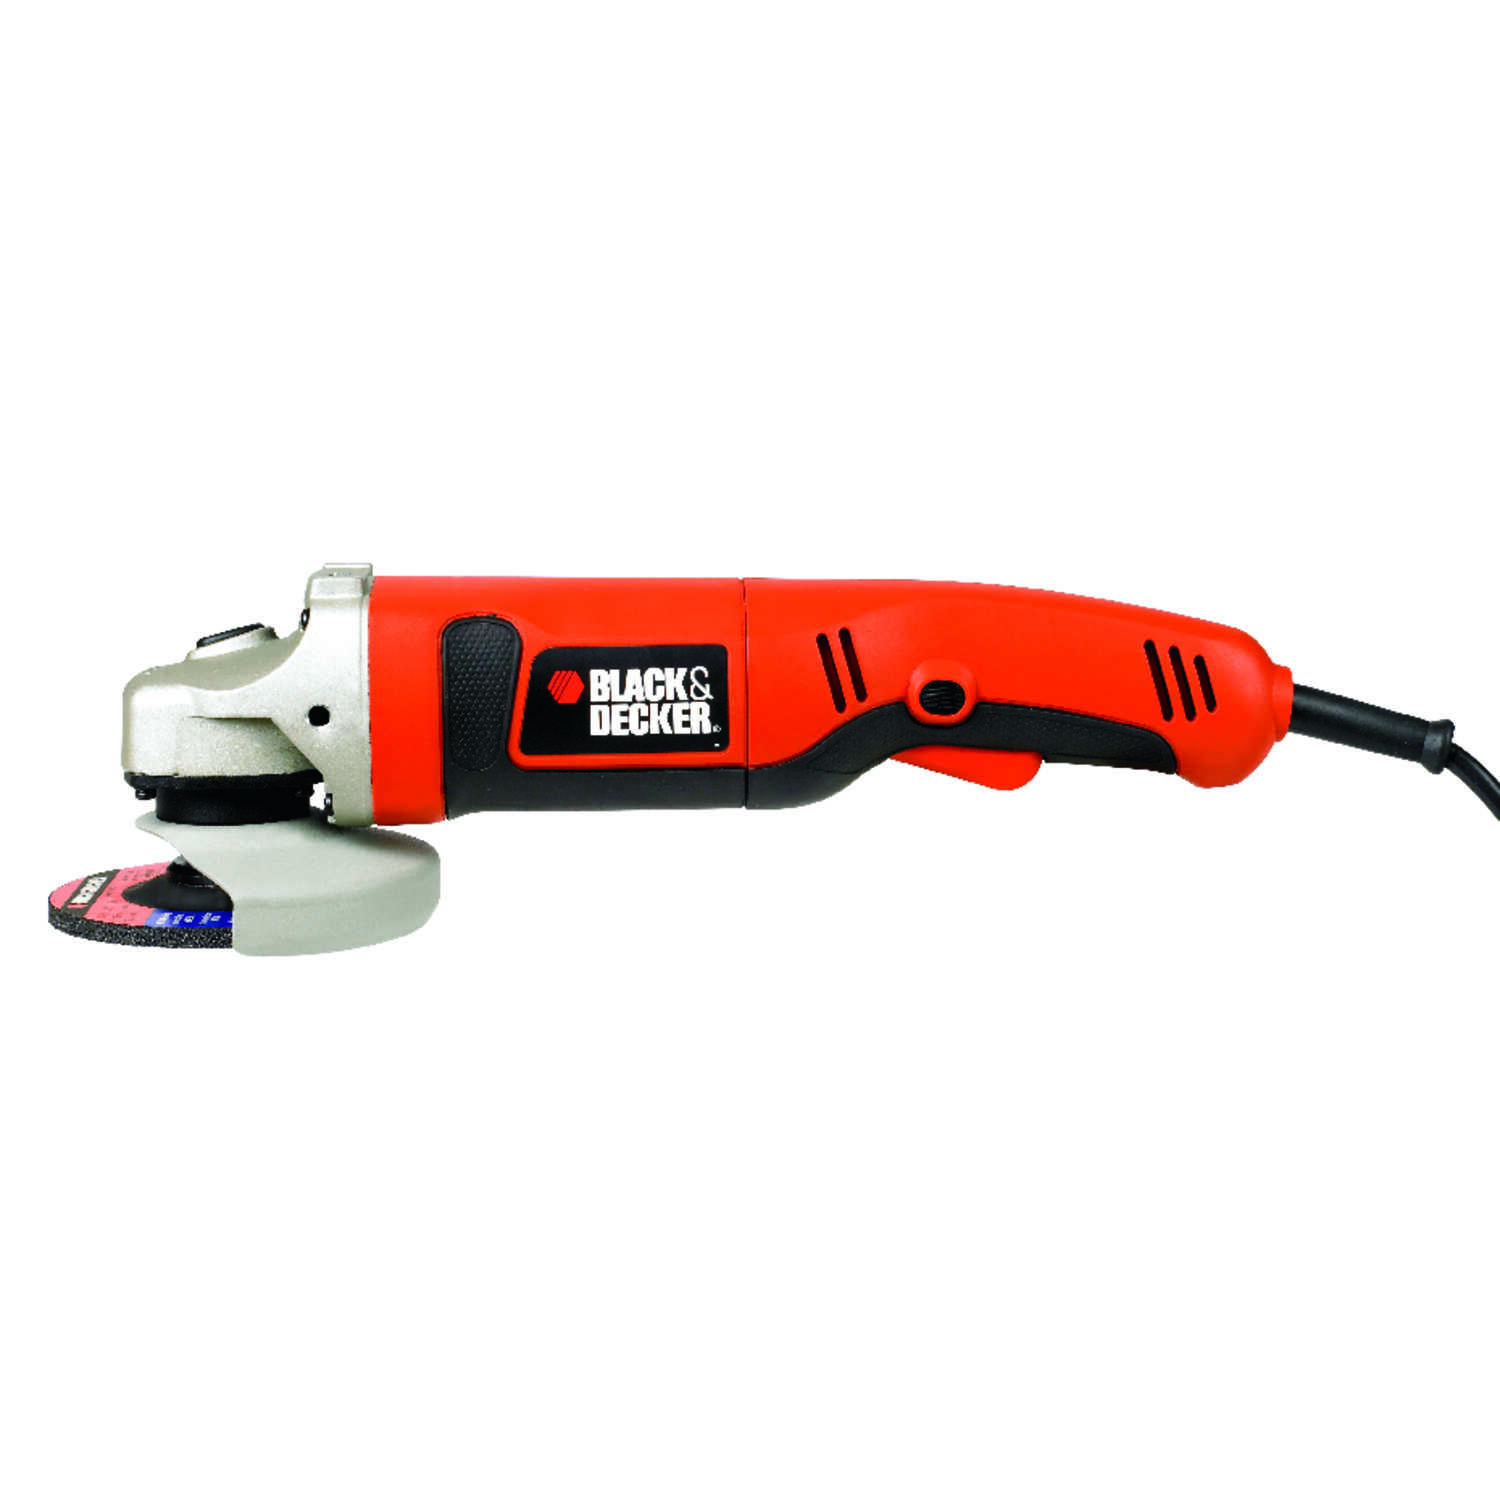 Black and Decker  Corded  8.5 amps 4-1/2 in. Small Angle Grinder  Bare Tool  Slide  10000 rpm